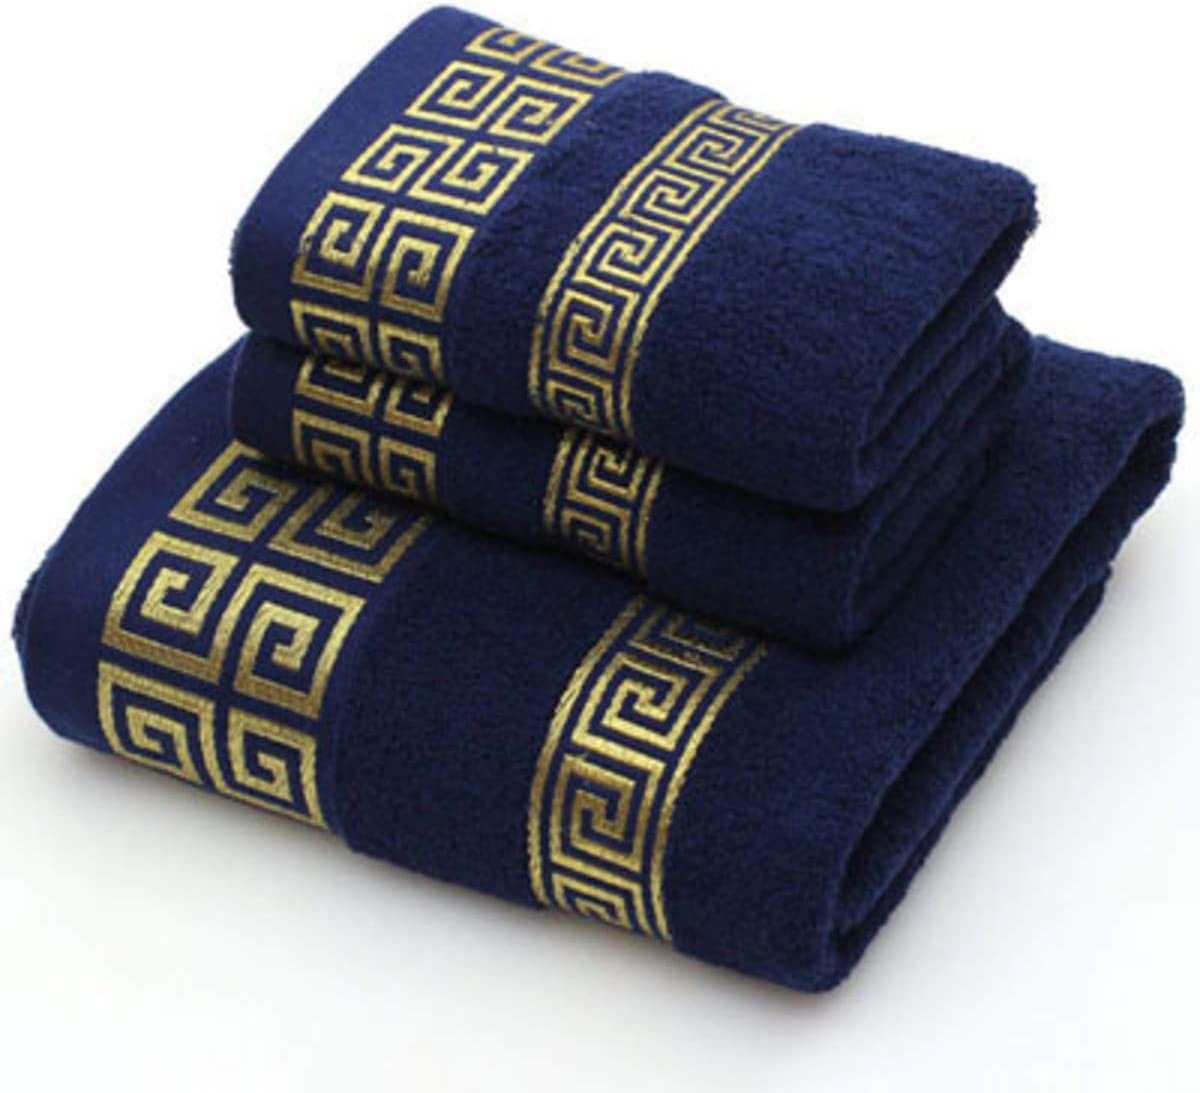 shangyi 2 Face Hand New Shipping Free Shipping Towel 1 Bathroom Solid Bath Color Blue Super popular specialty store